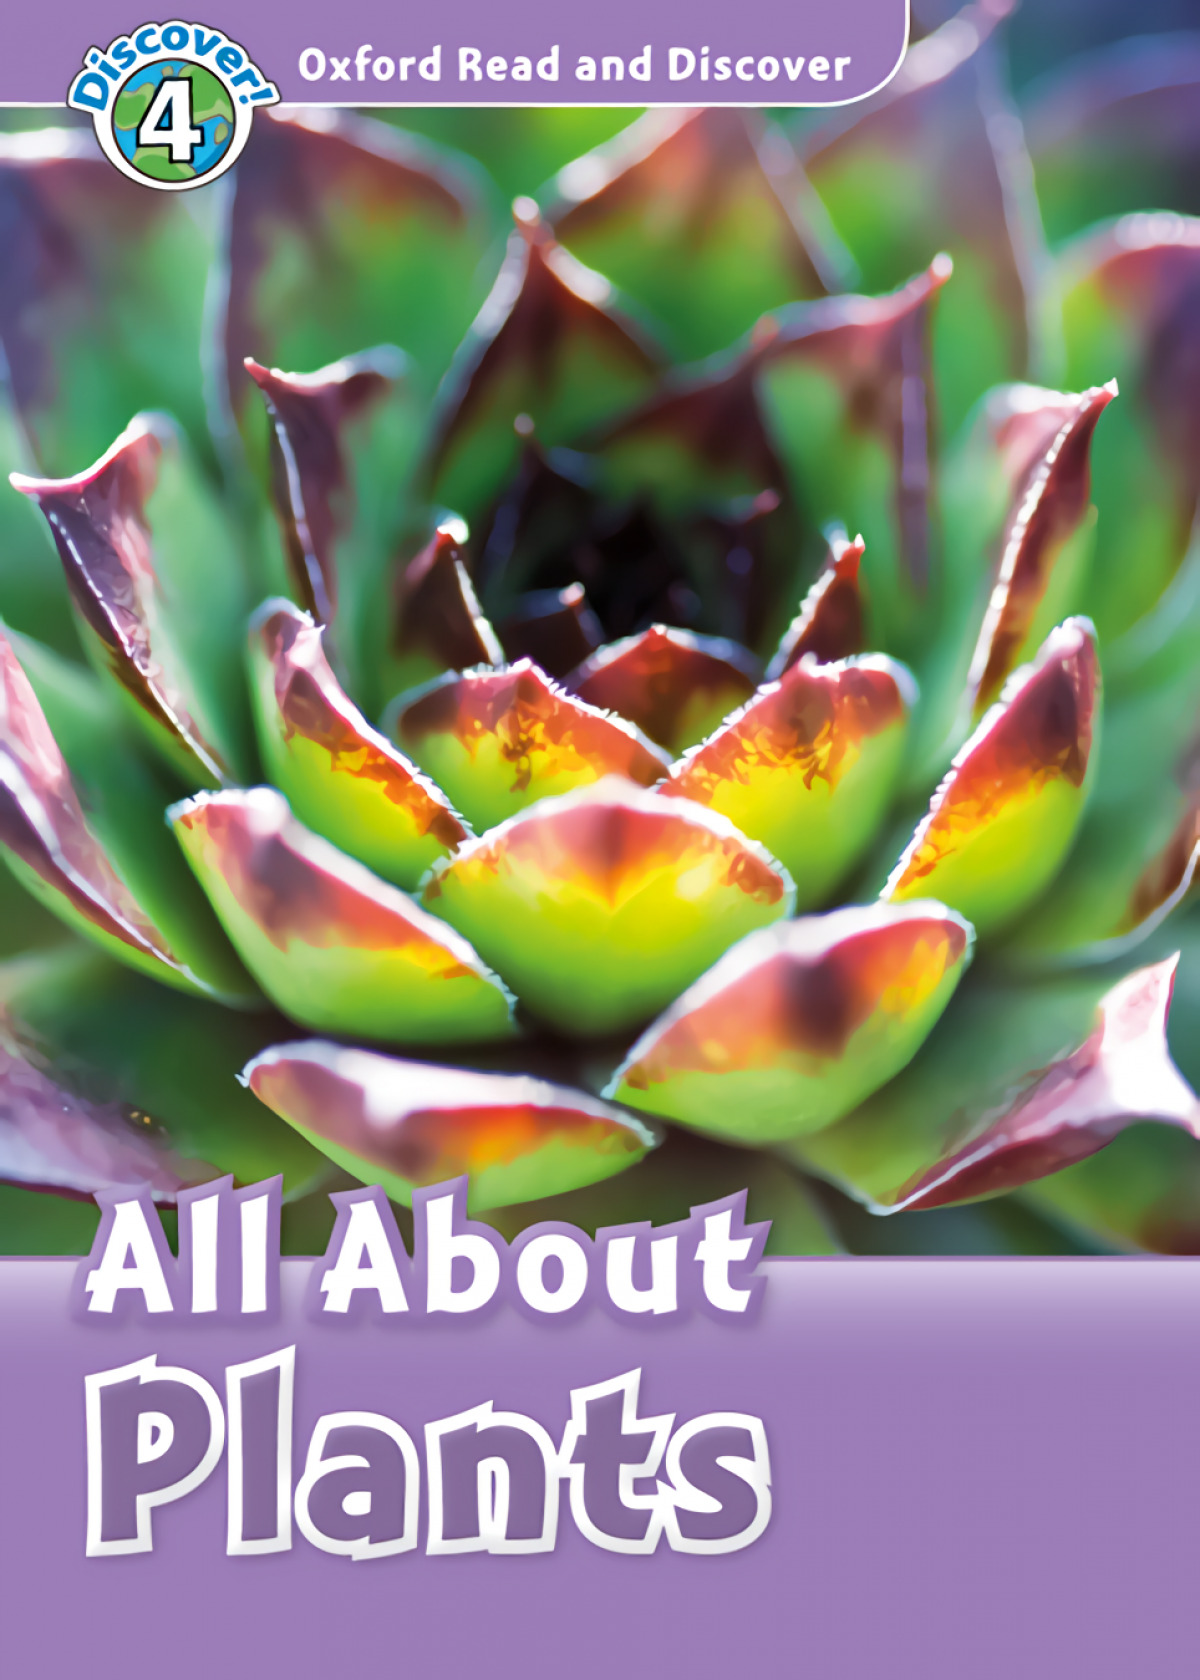 Oxford Read and Discover 4. All About Plants MP3 Pack